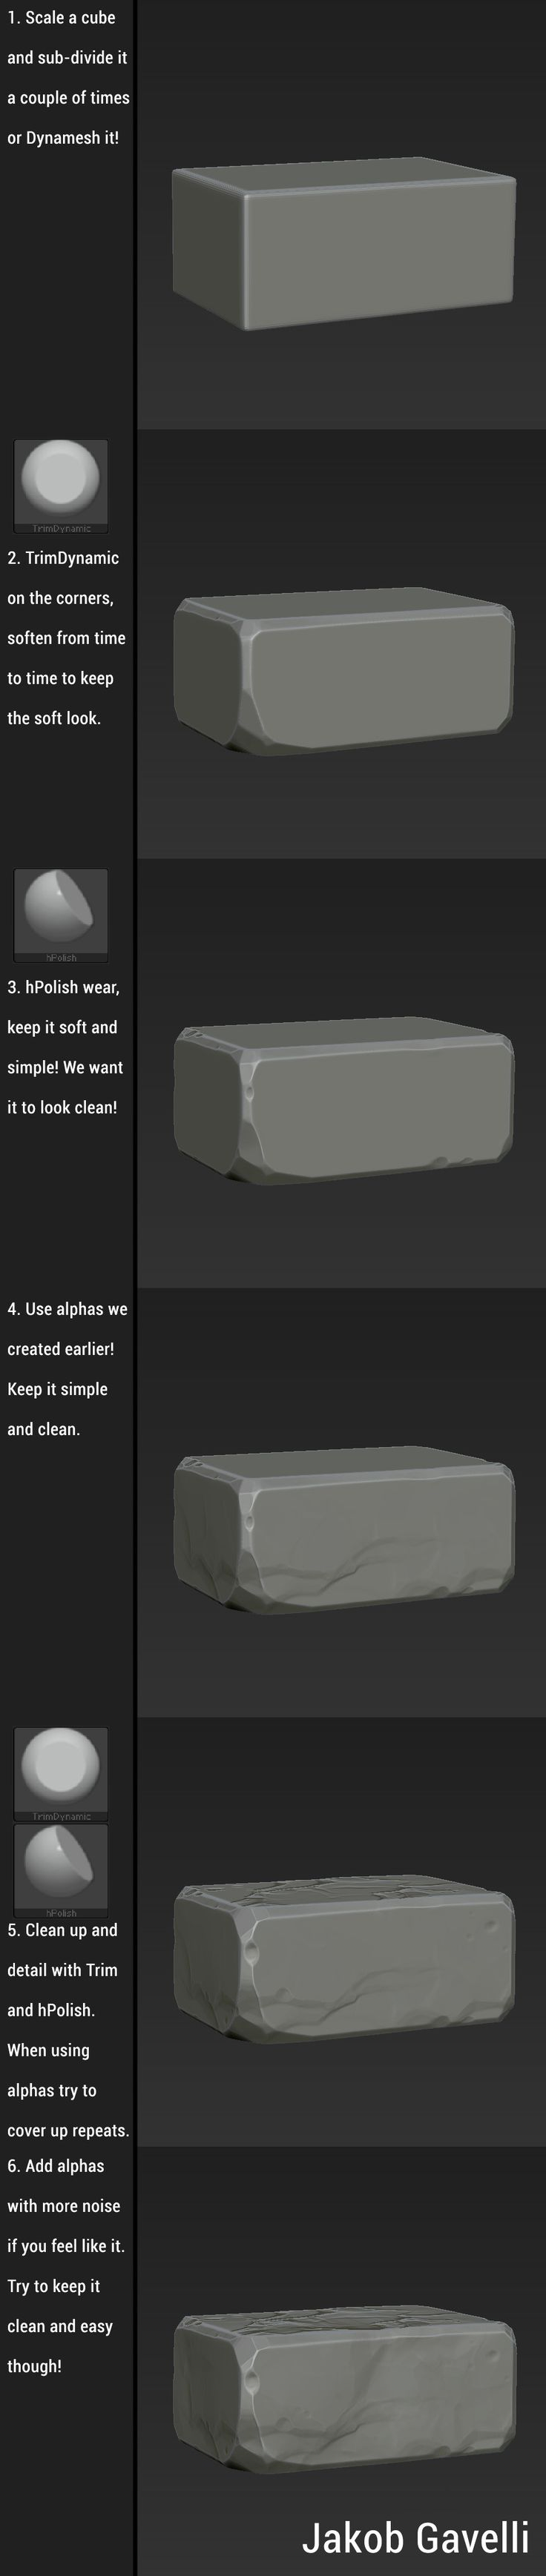 ArtStation - Brick and Alpha Tutorial 2.0, Jakob Gavelli